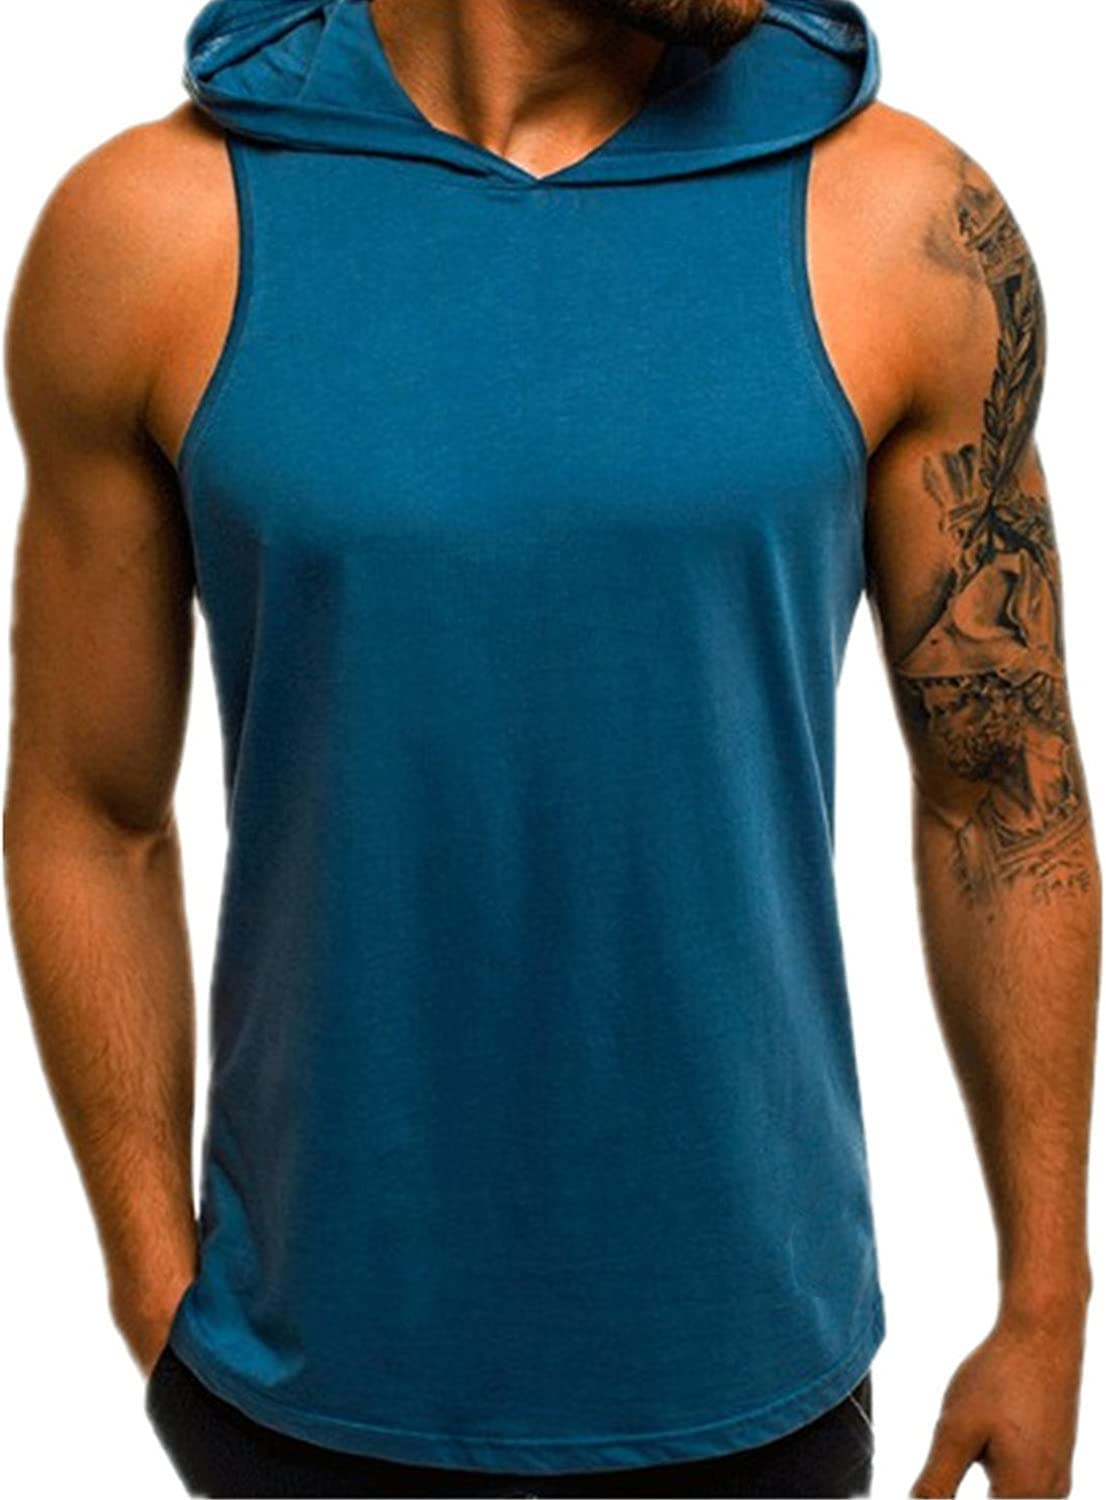 Men's Athletic Sleeveless Japan Maker New Lowest price challenge Hoodie Tank Workout Run Quick Dry Tops